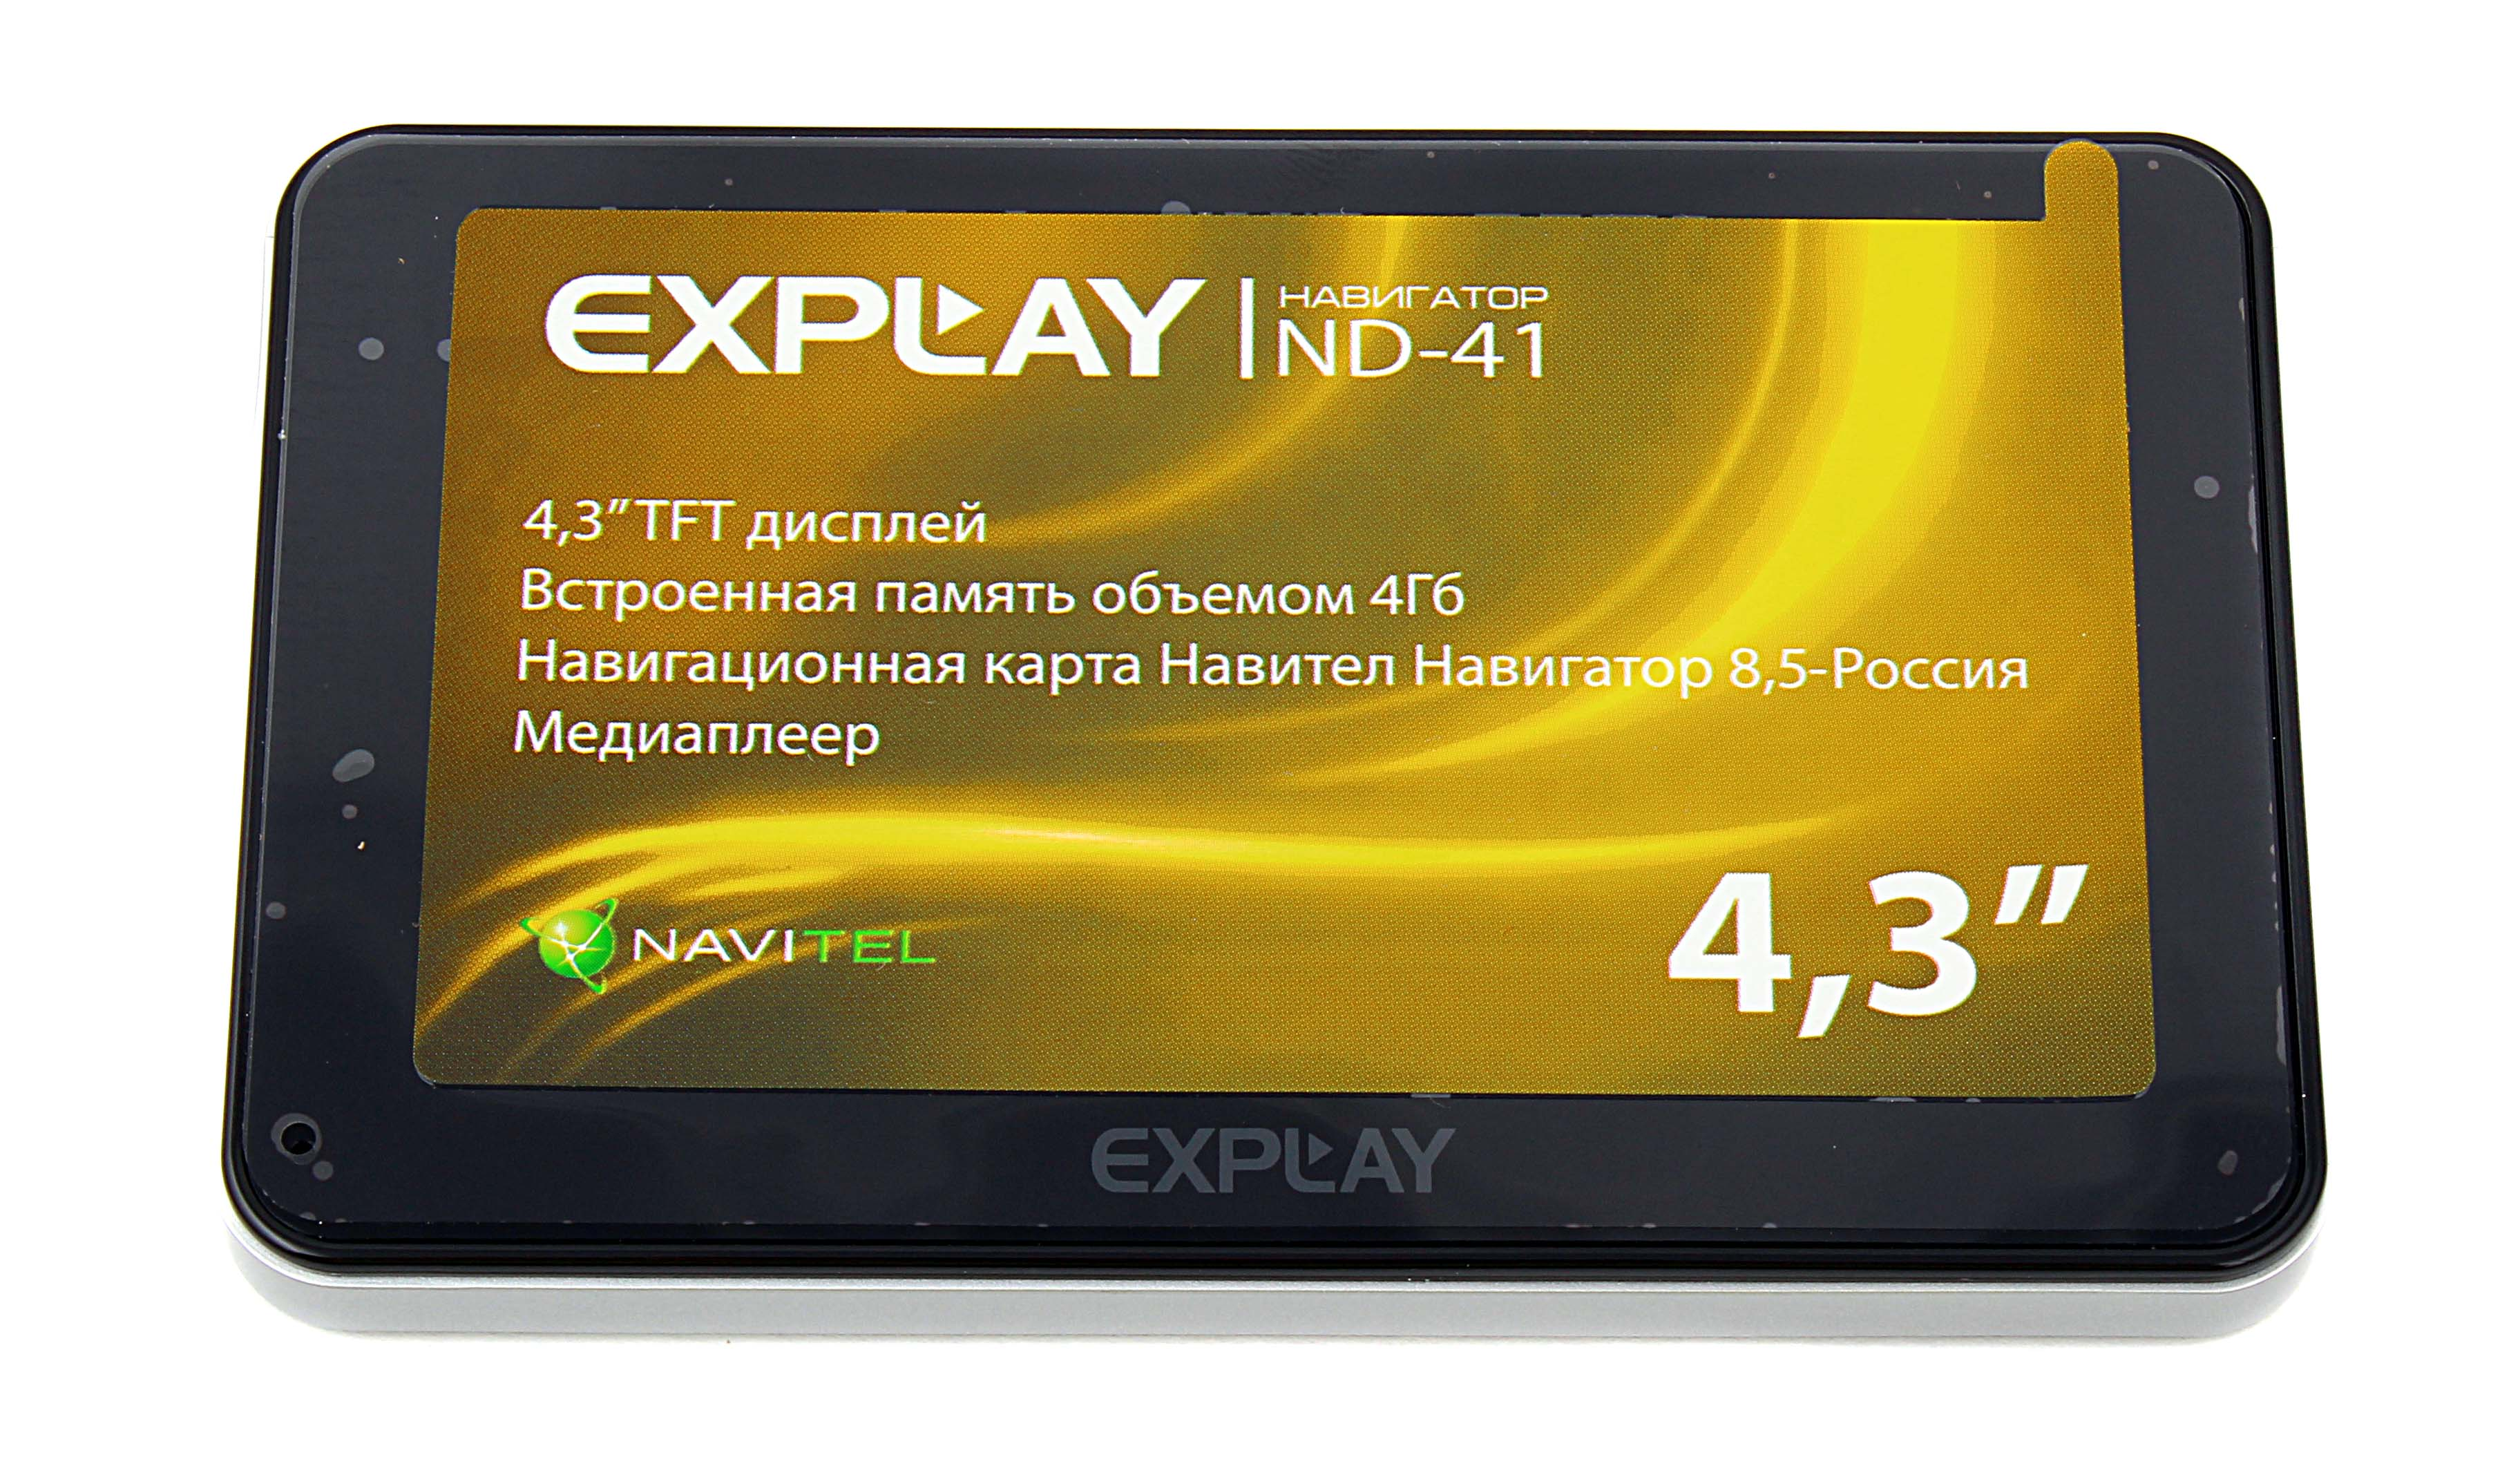 Навигатор Explay Real Brand Technics 1844.000